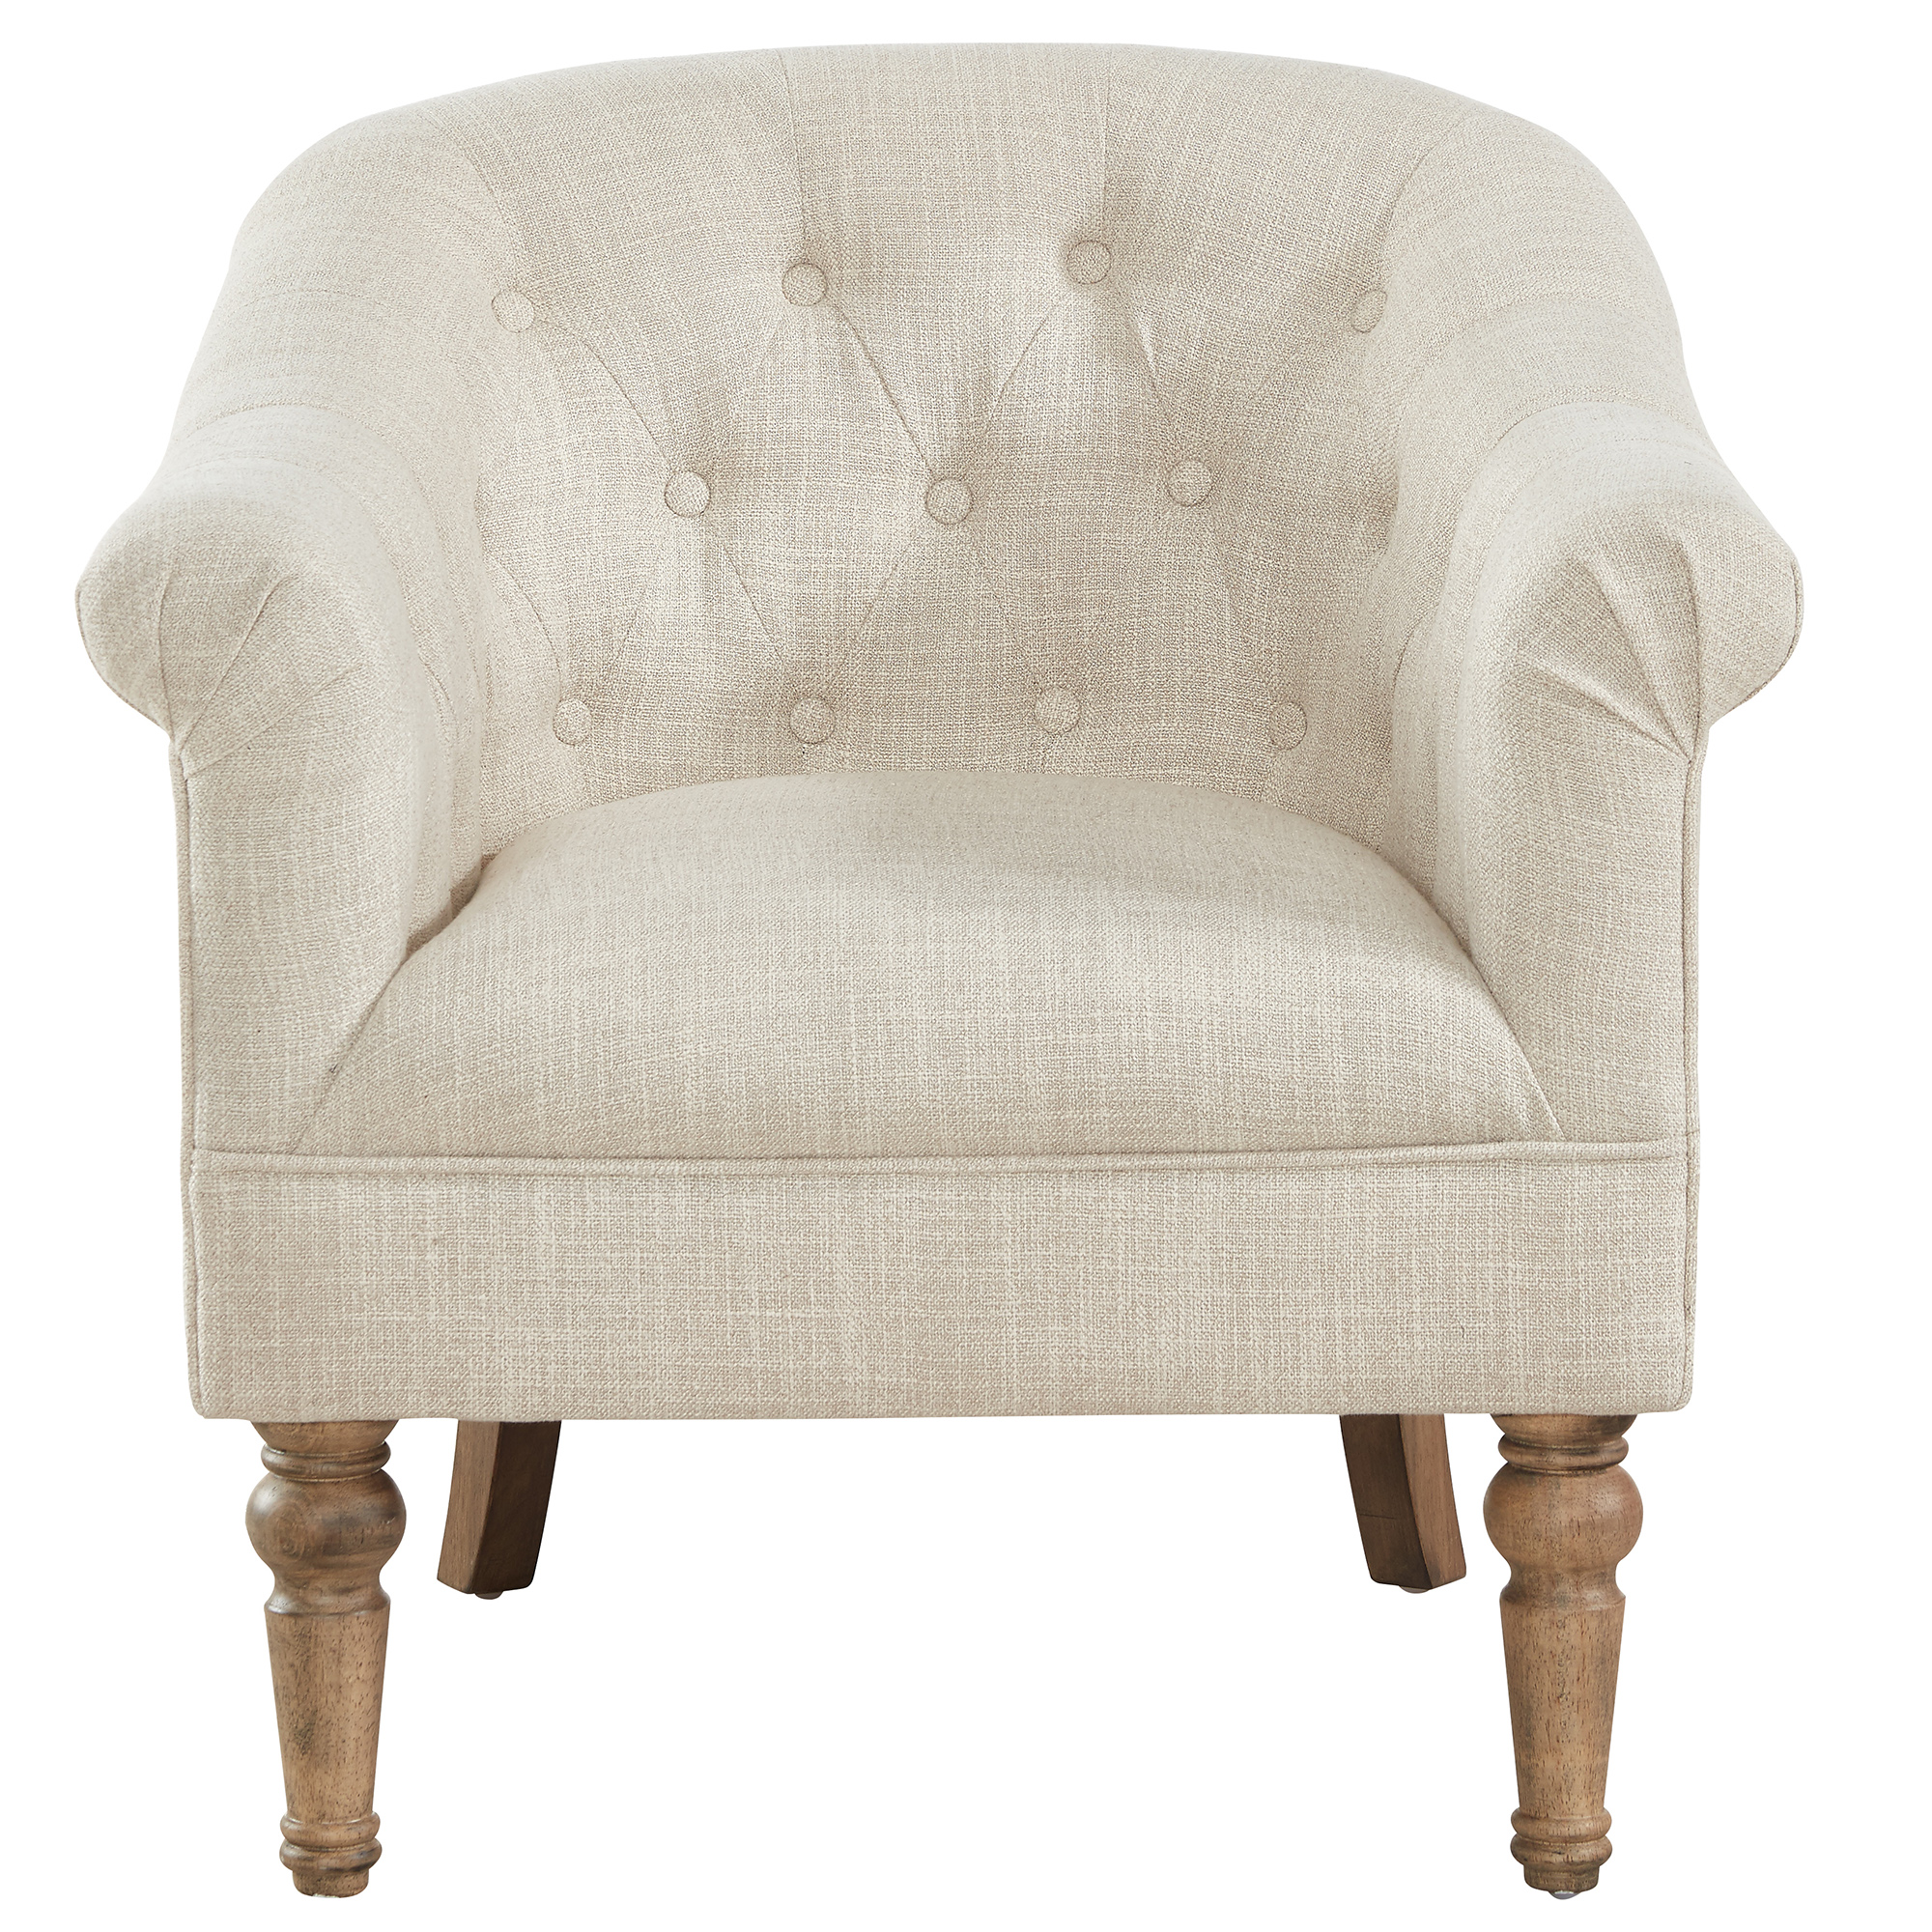 WELBECK-ACCENT CHAIR-BEIGE, 841173028466, Accent Chairs by Midha Furniture to Brampton, Mississauga, Etobicoke, Toronto, Scraborough, Caledon, Oakville, Markham, Ajax, Pickering, Oshawa, Richmondhill, Kitchener, Hamilton and GTA area